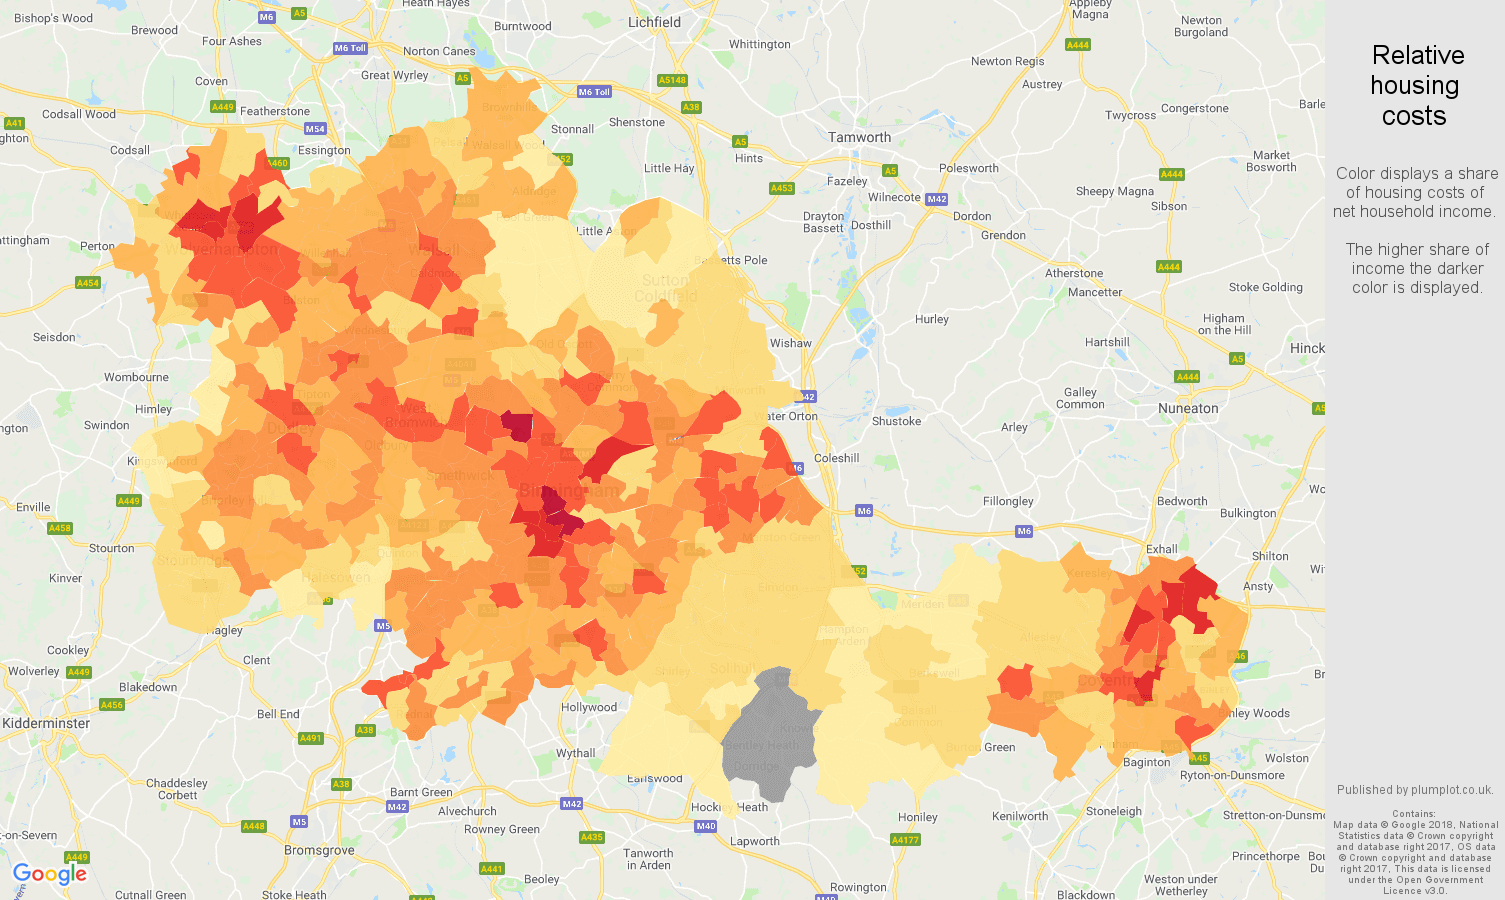 West Midlands county relative housing costs map